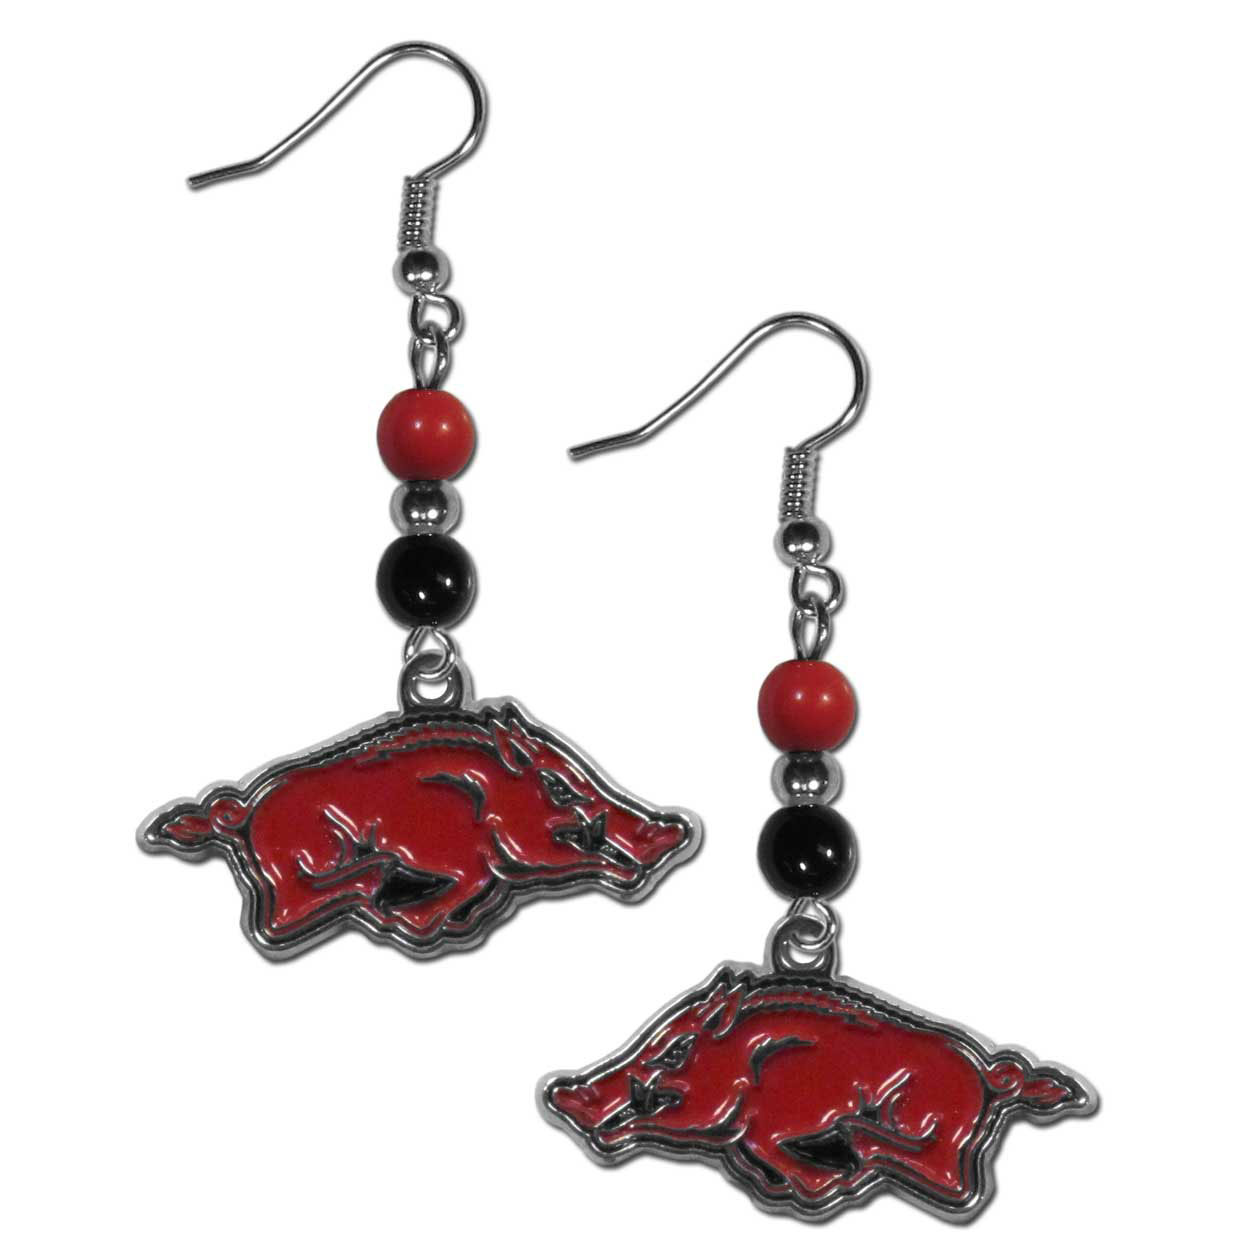 Arkansas Razorbacks Fan Bead Dangle Earrings - Love your team, show it off with our Arkansas Razorbacks bead dangle earrings! These super cute earrings hang approximately 2 inches and features 2 team colored beads and a high polish team charm. A must have for game day!